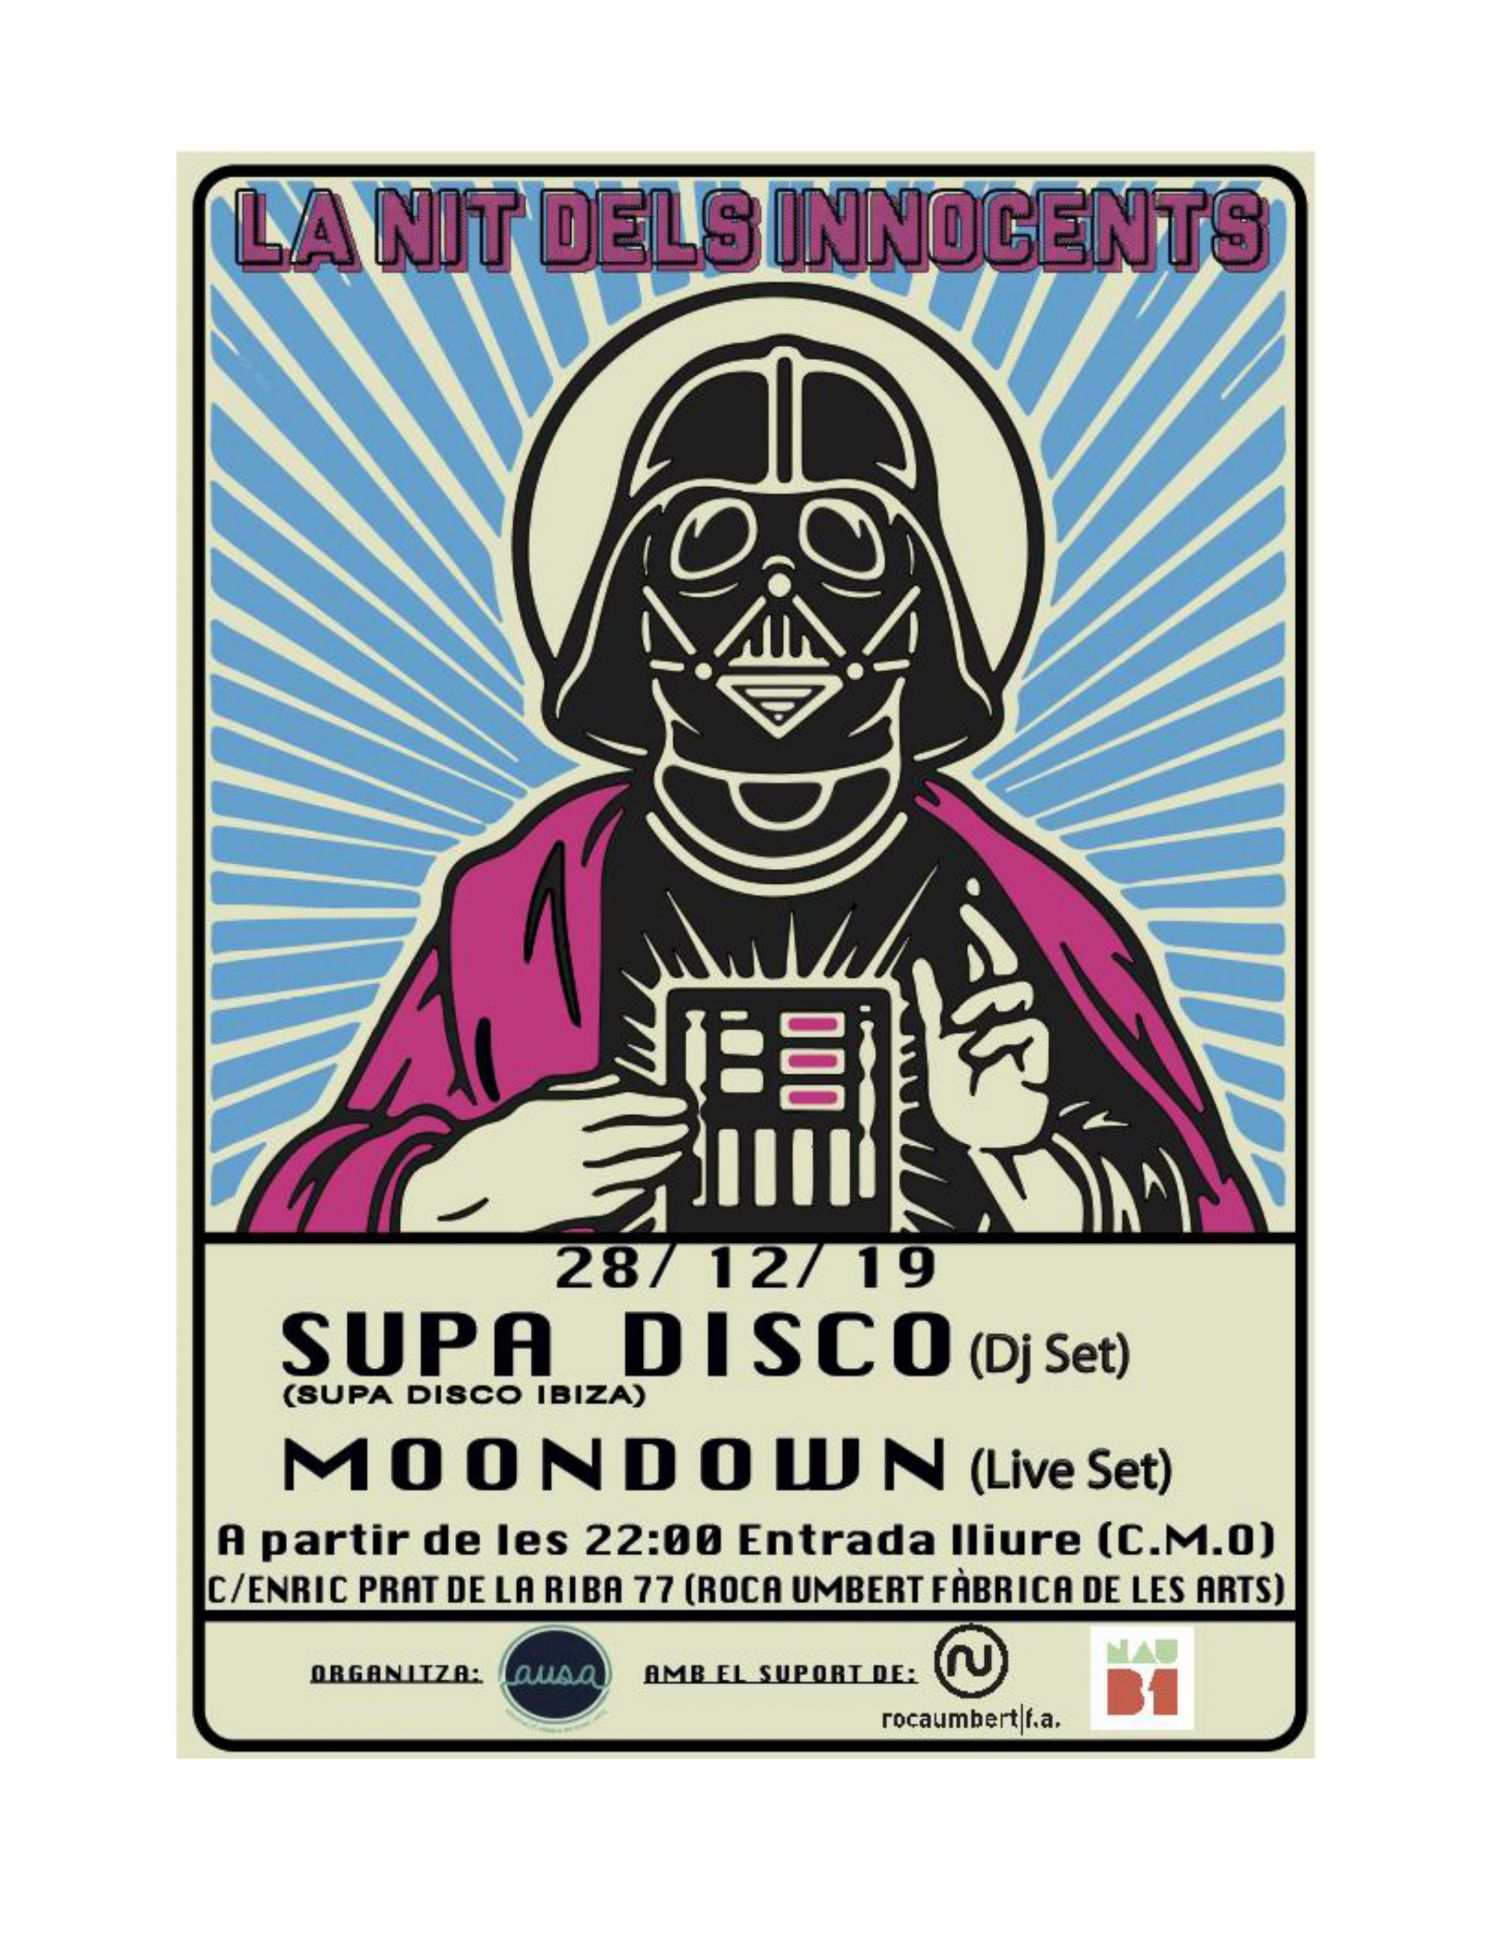 Concert de Dj Pum + Parker, Moondown, Supa Disco  - Nit dels innocents